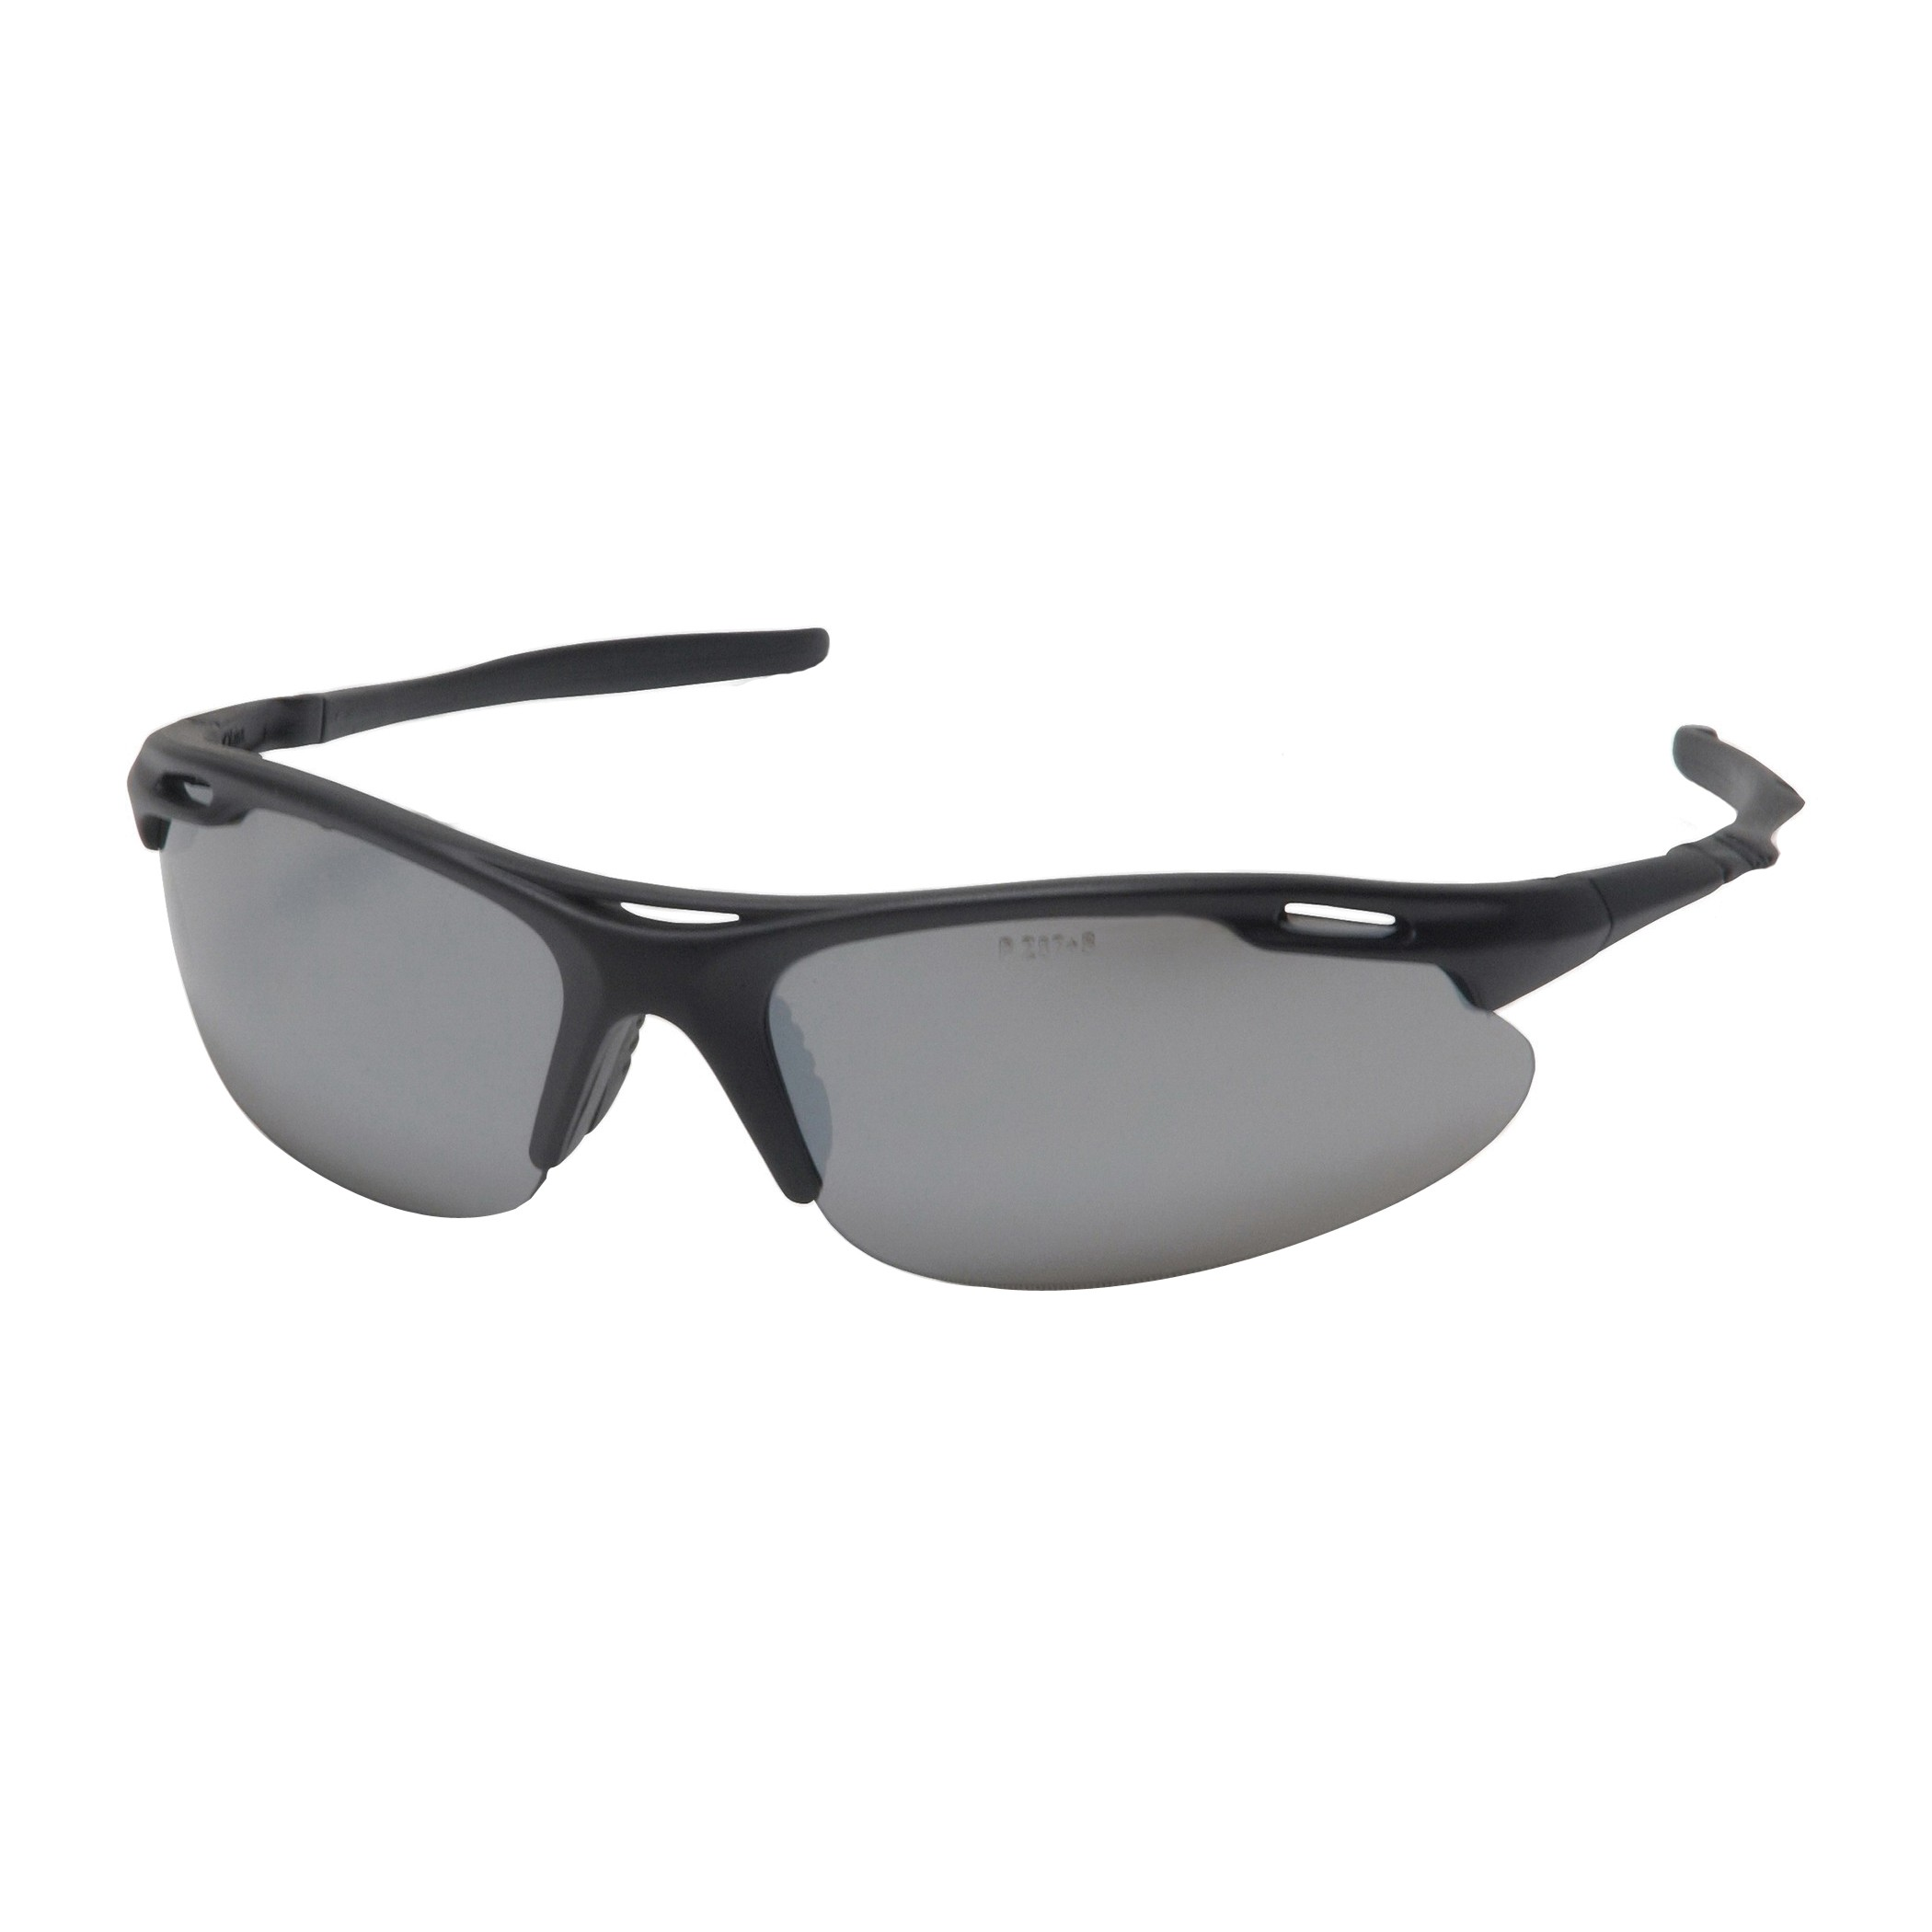 Pyramex® SB4570D Light Weight, Sporty Style Protective Glasses, Universal, Framed Black Frame, Scratch-Resistant